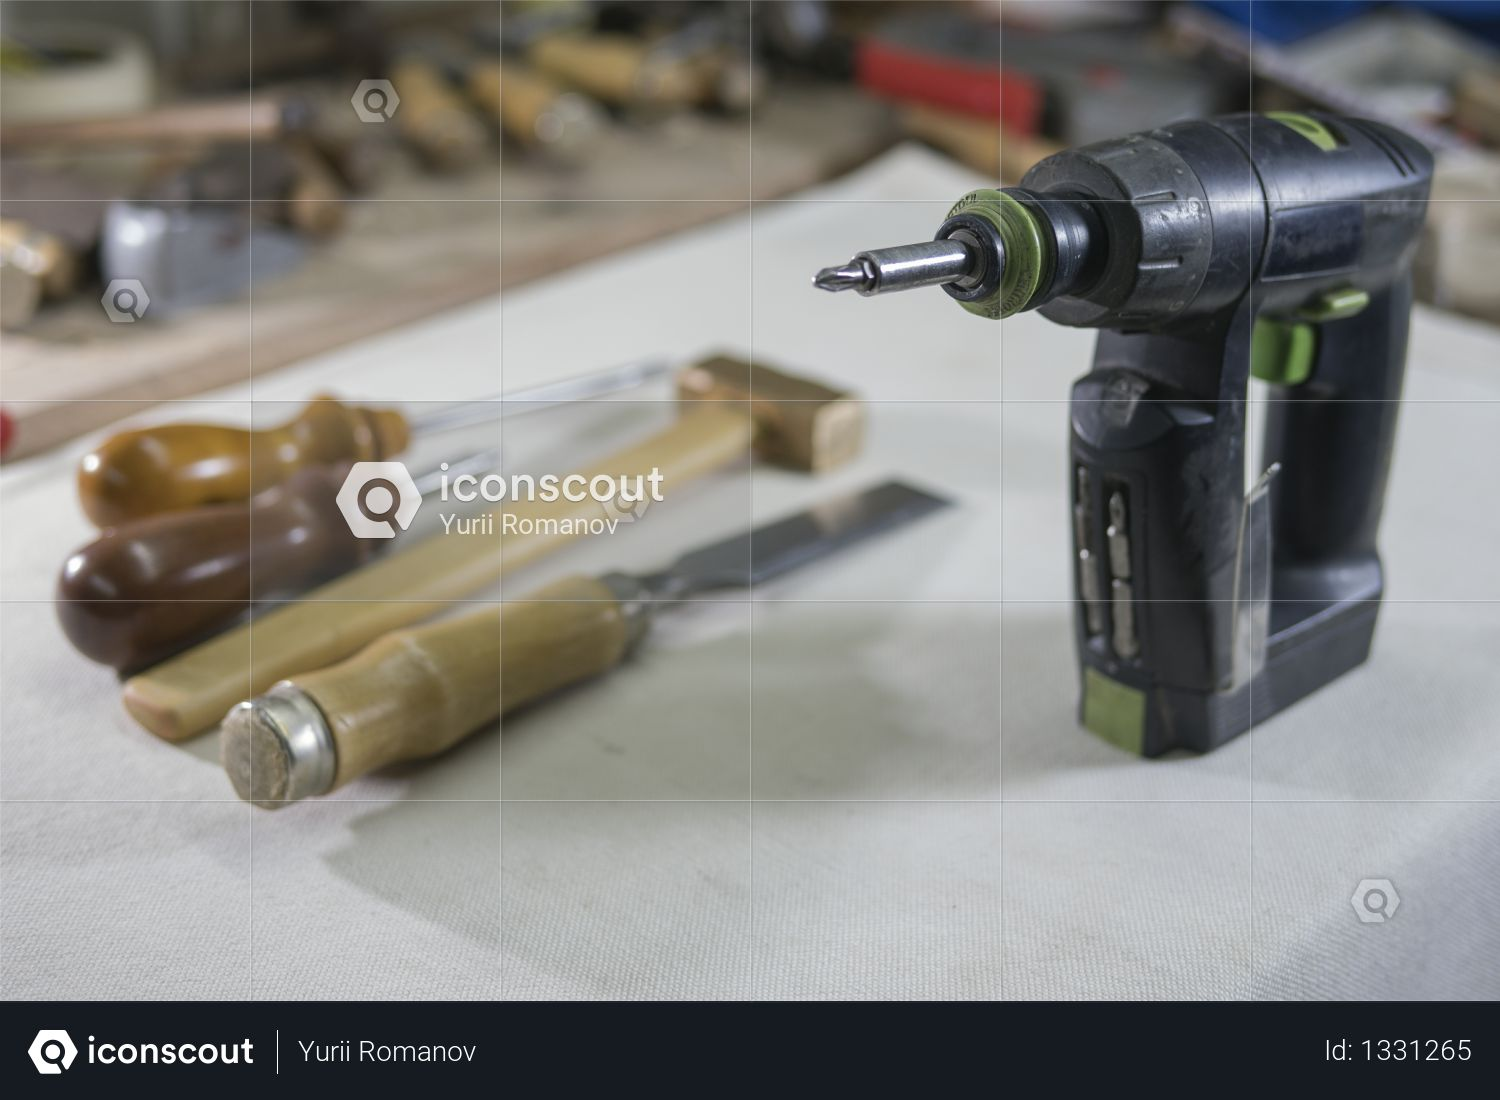 Drill screwdriver in the carpentry mater on the workbench Photo